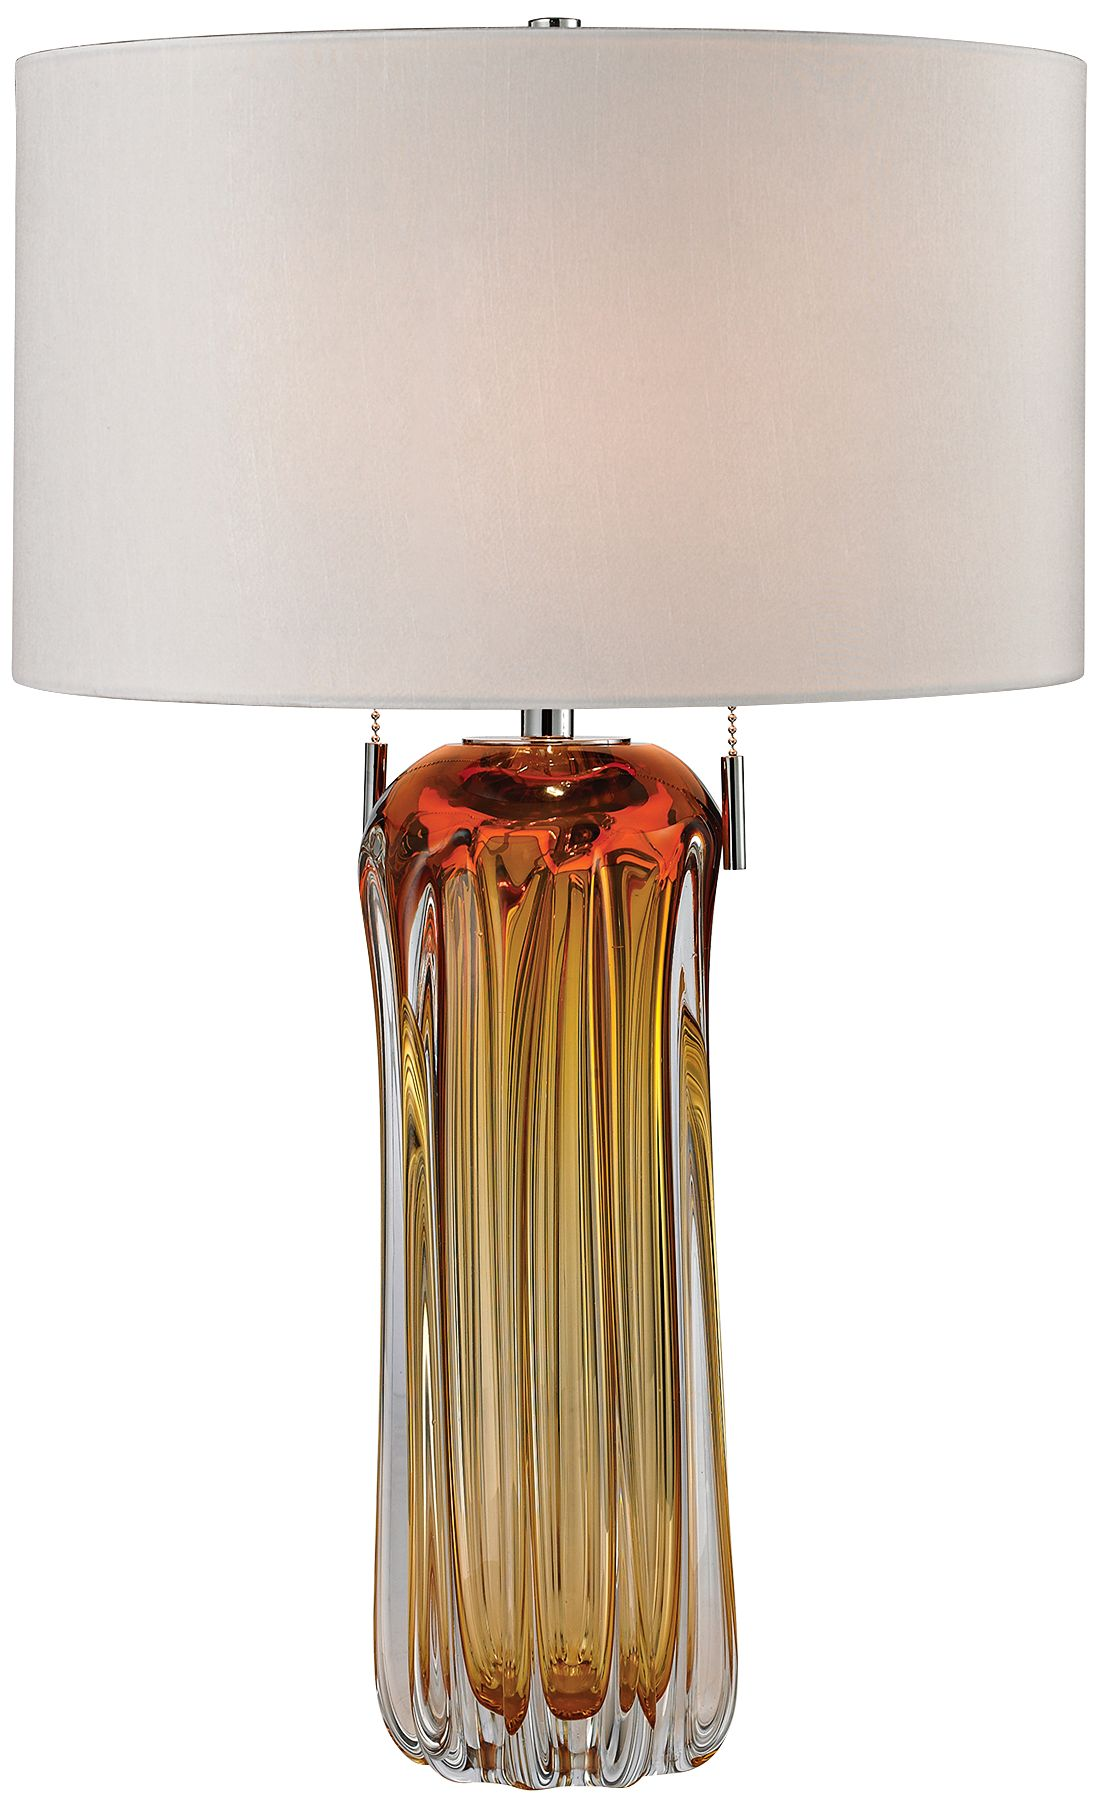 Dimond Ferrara Amber Free Blown Glass Table Lamp